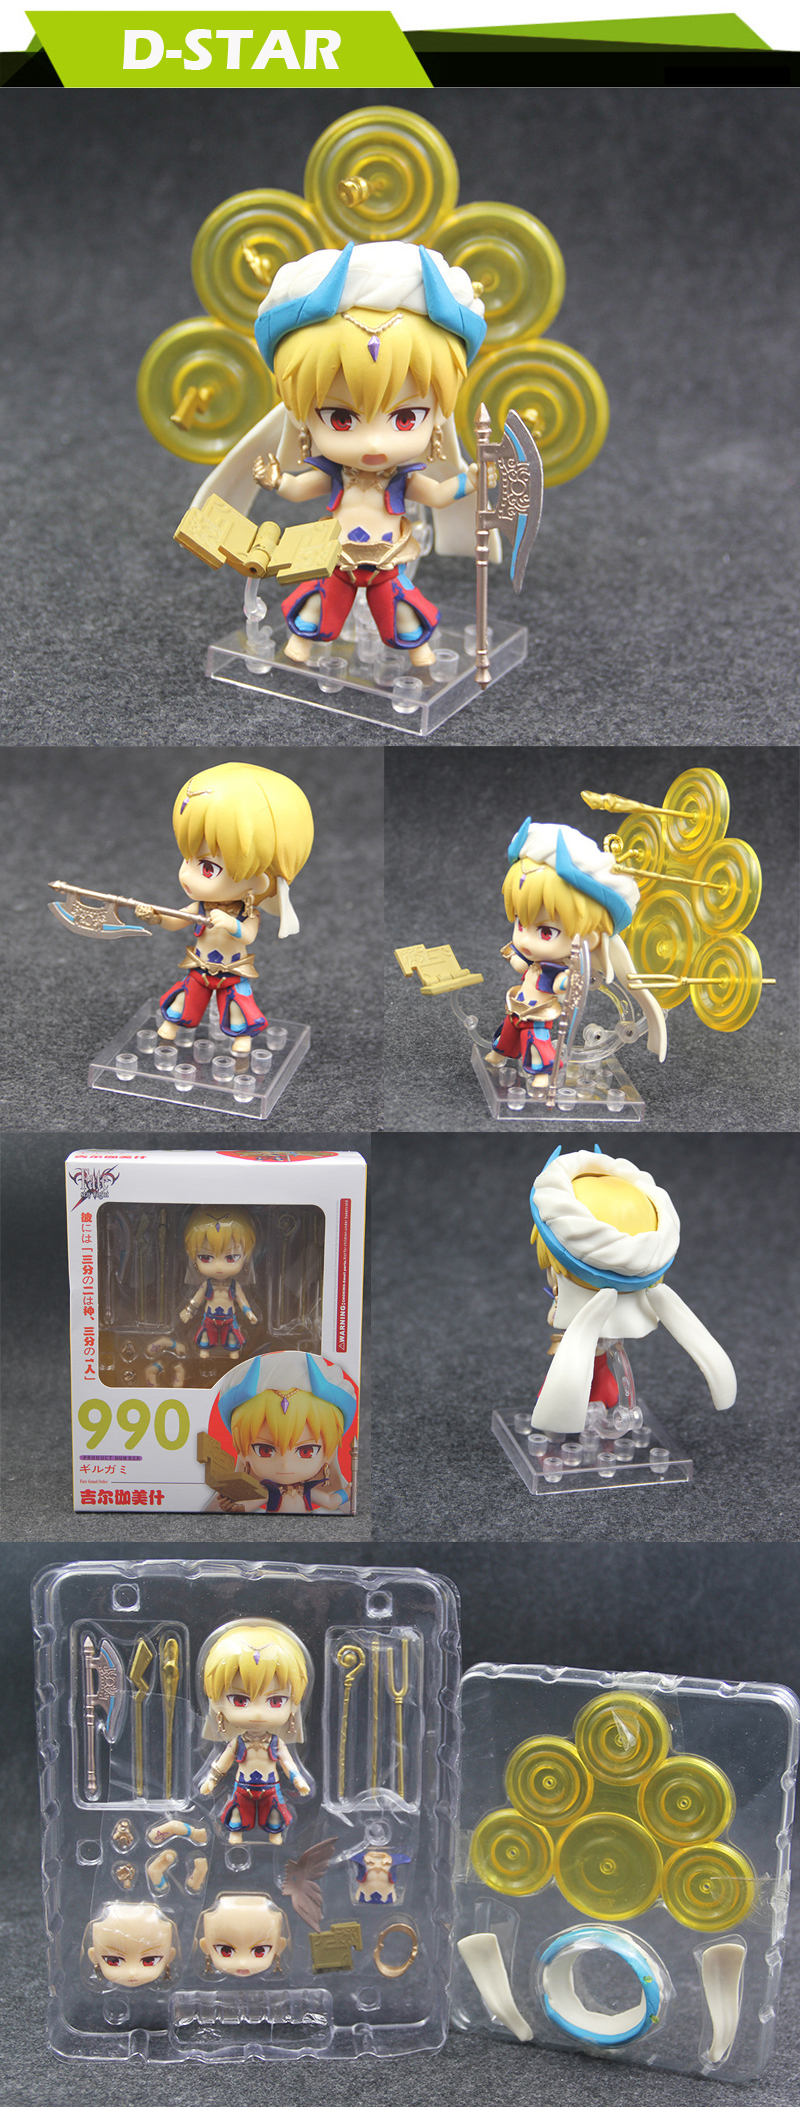 2019 Cute 4 Nendoroid Fate Grand Order Stay Night Anime FGO Archer  Gilgamesh #990 Boxed PVC Acton Figure Model Doll Toys Gift From Windbaby,  &Price